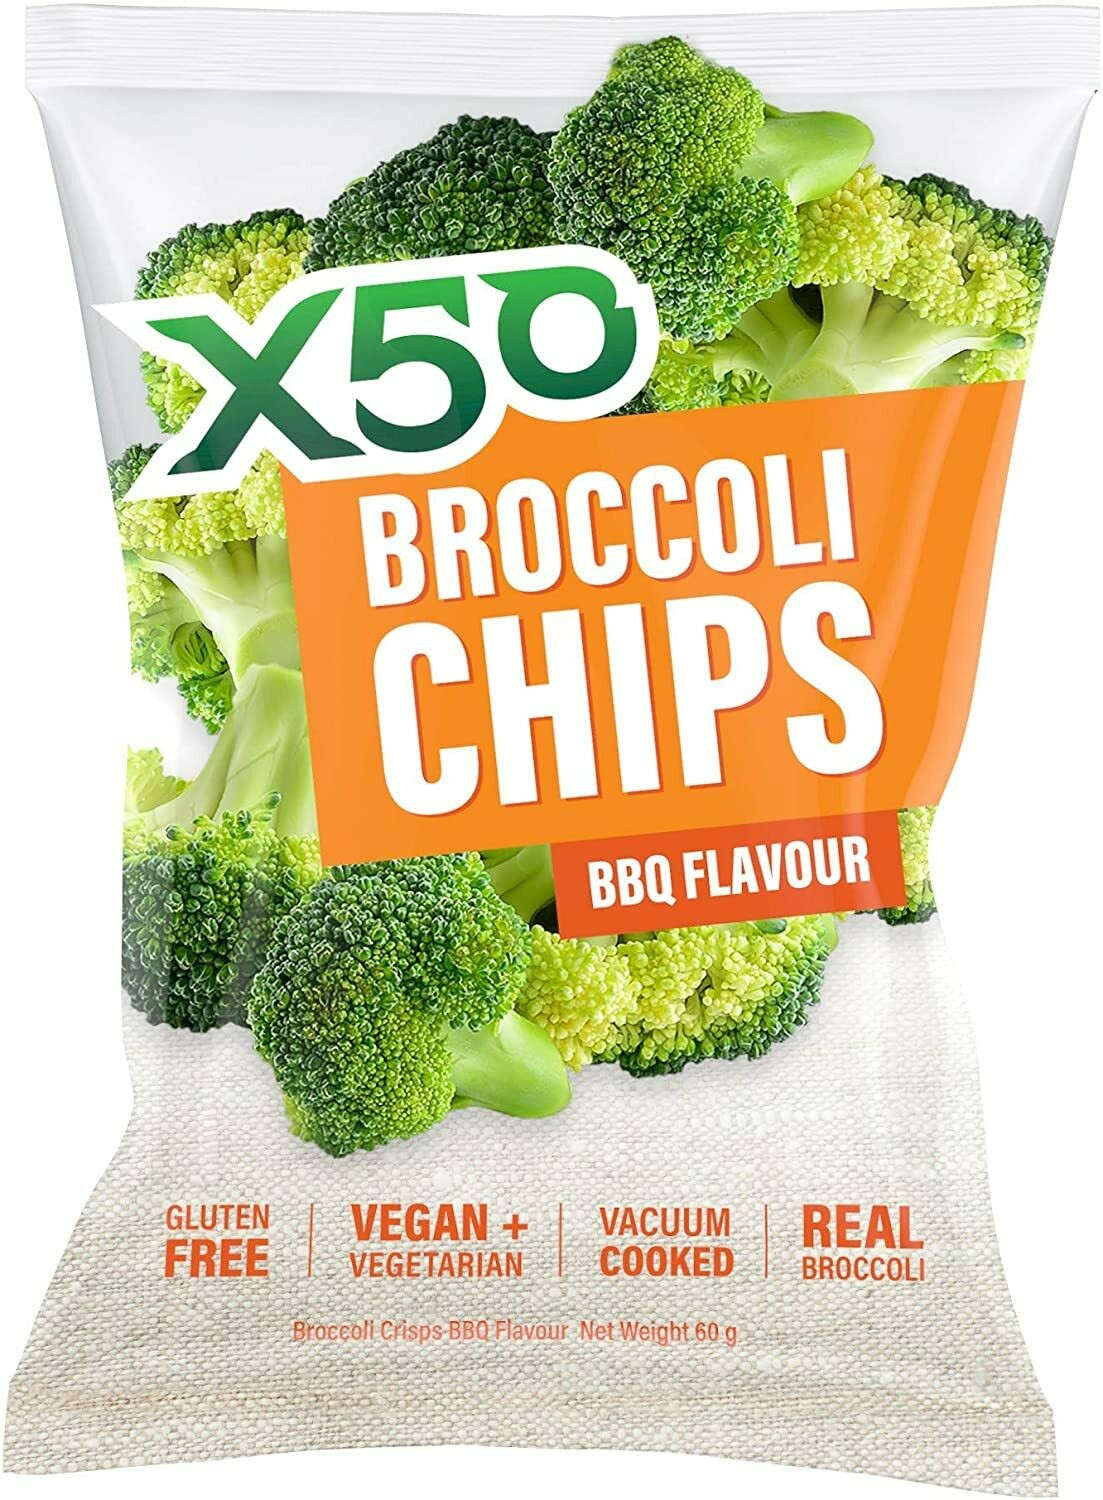 X50 Broccoli Chips 60g by X50